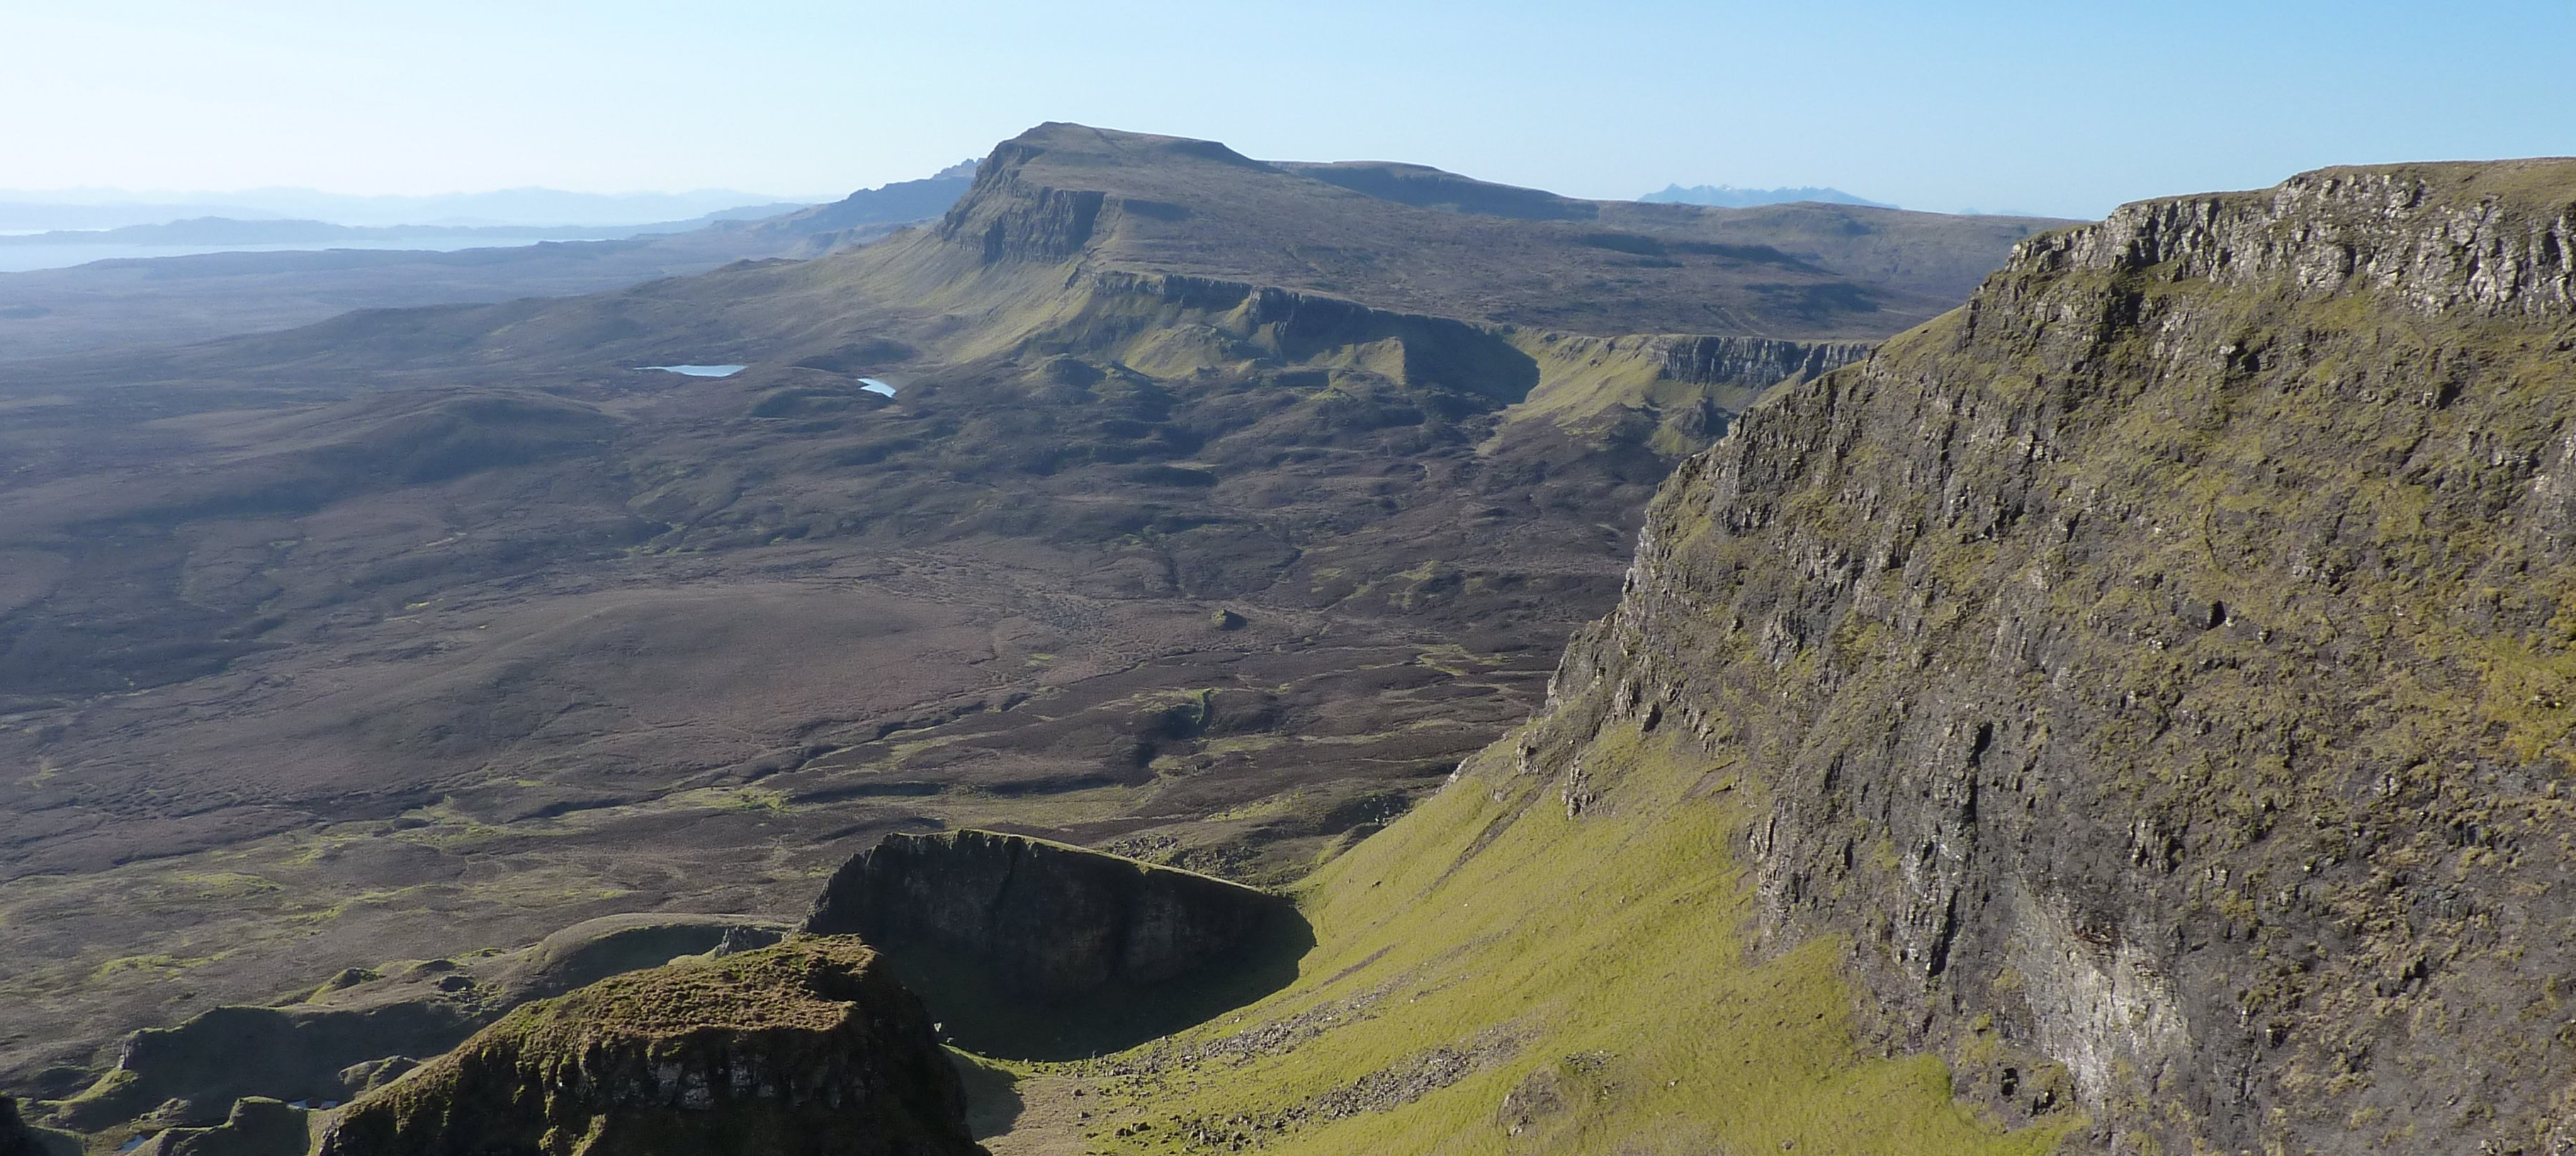 Ahead, the Trotternish Ridge beckons - a series of painful ascents and steep descents